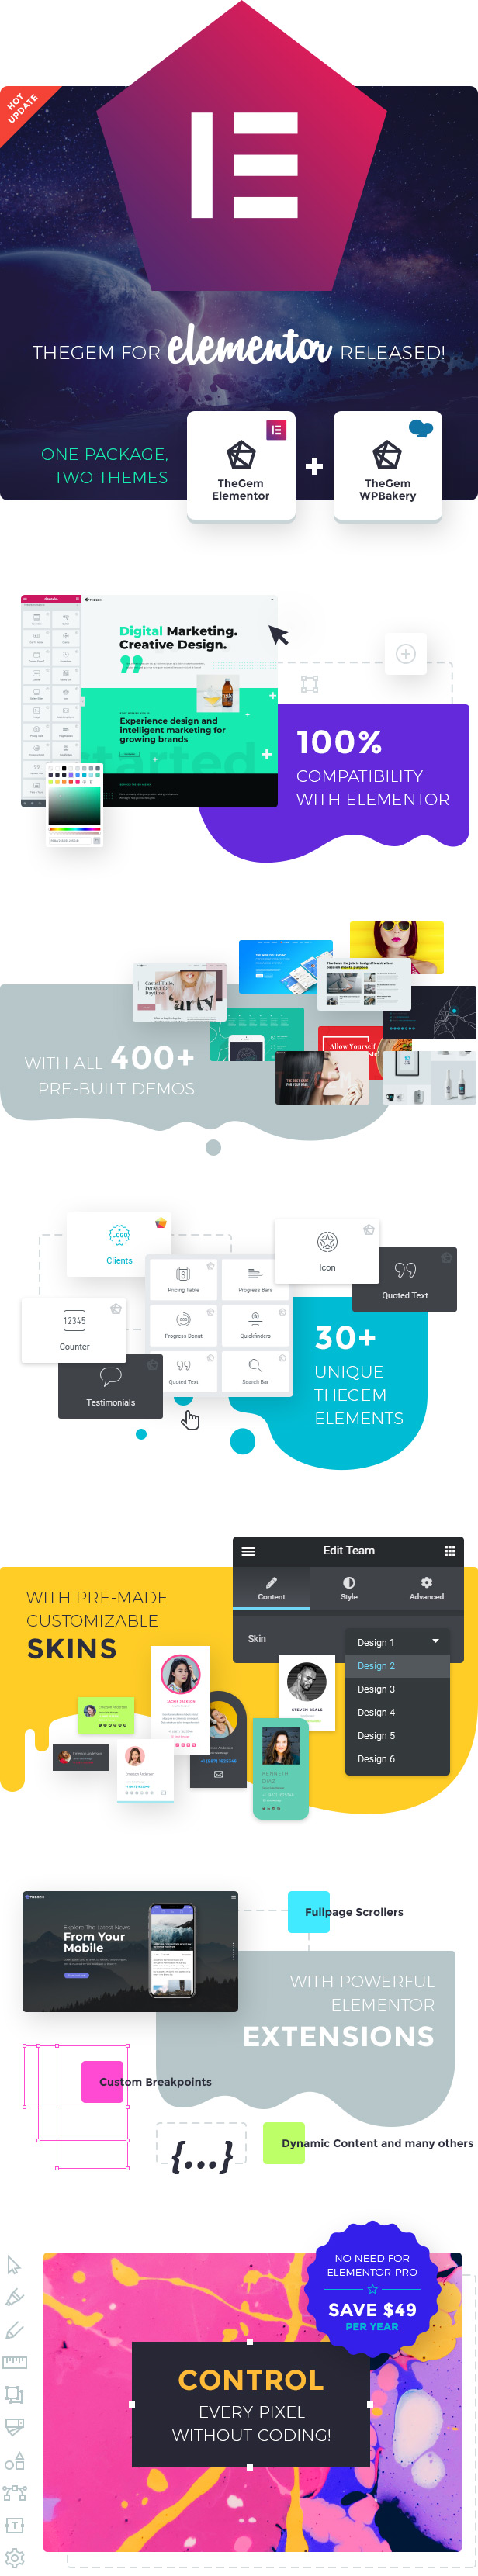 TheGem - Creative Multi-Purpose High-Performance WordPress Theme - 1